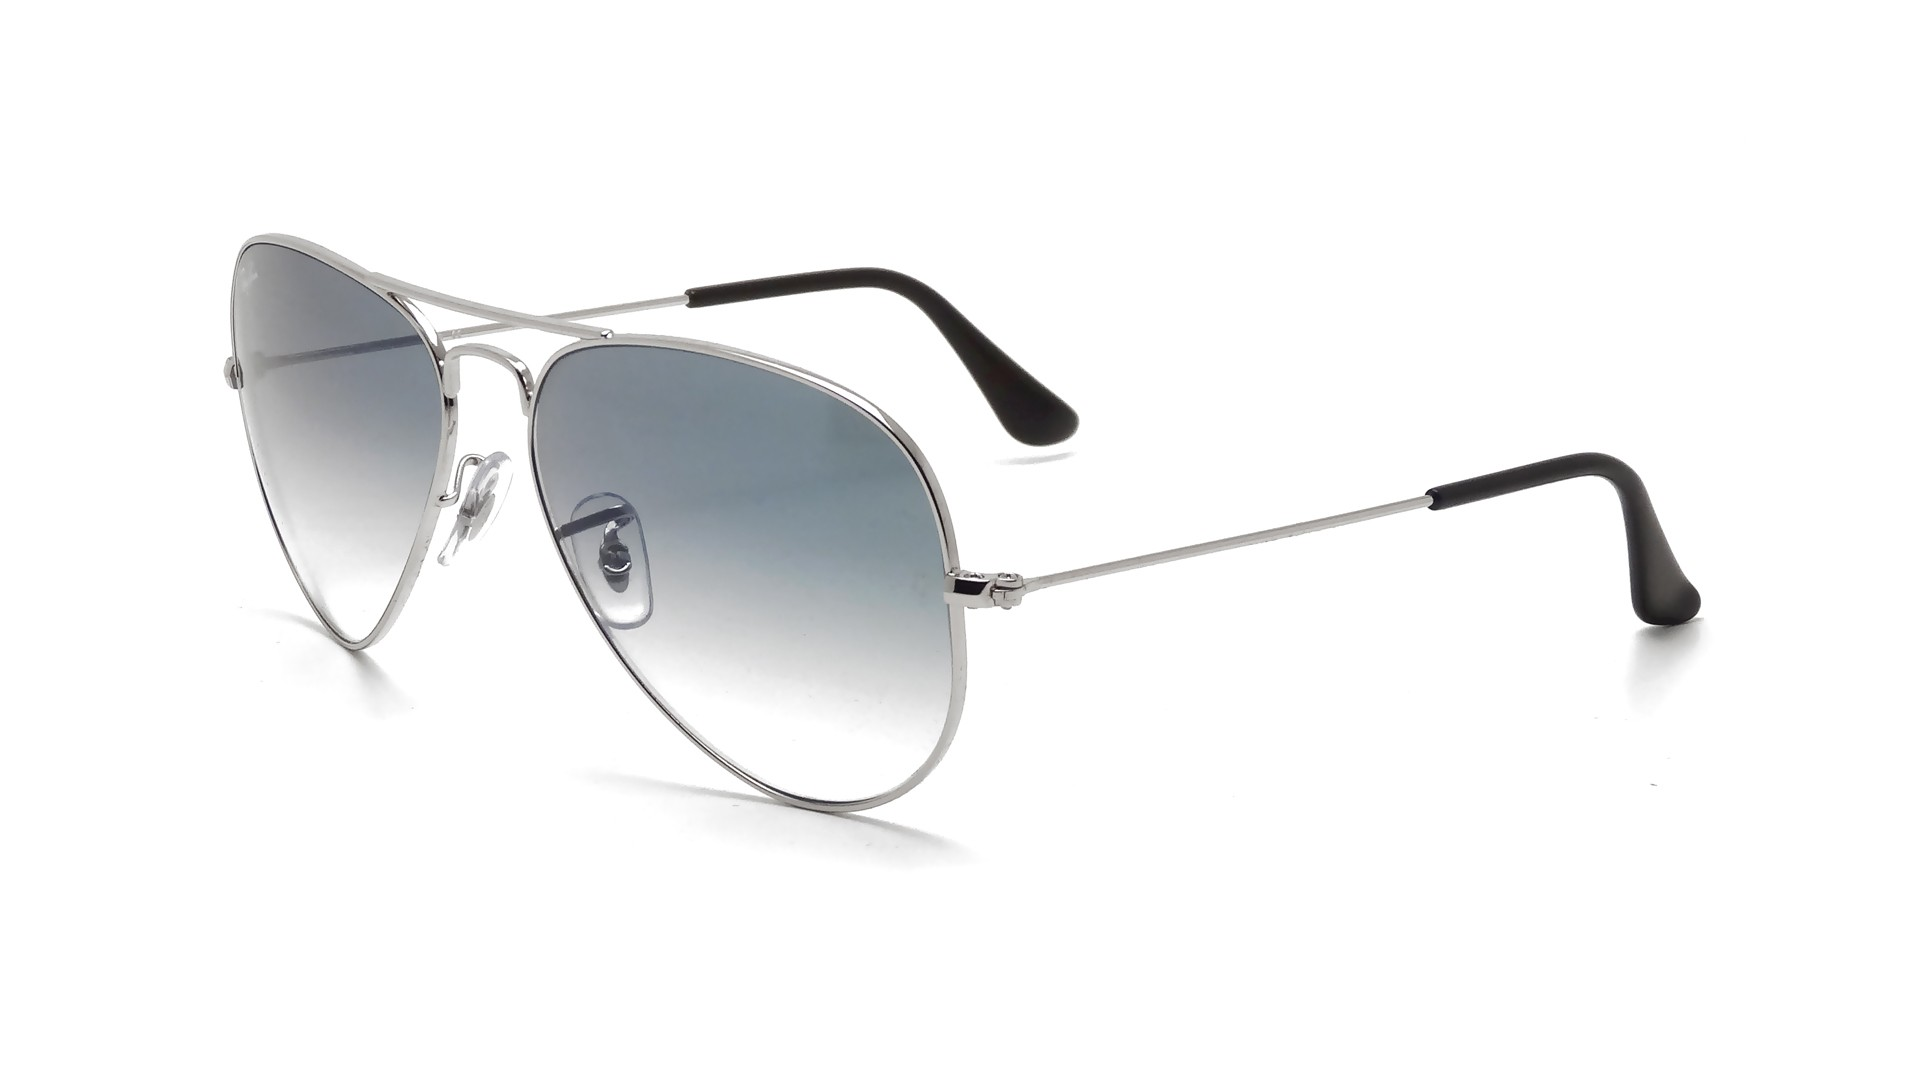 f9be5f9d15 Sunglasses Ray-Ban Aviator Large Metal Silver RB3025 003 3F 62-14 Large  Gradient